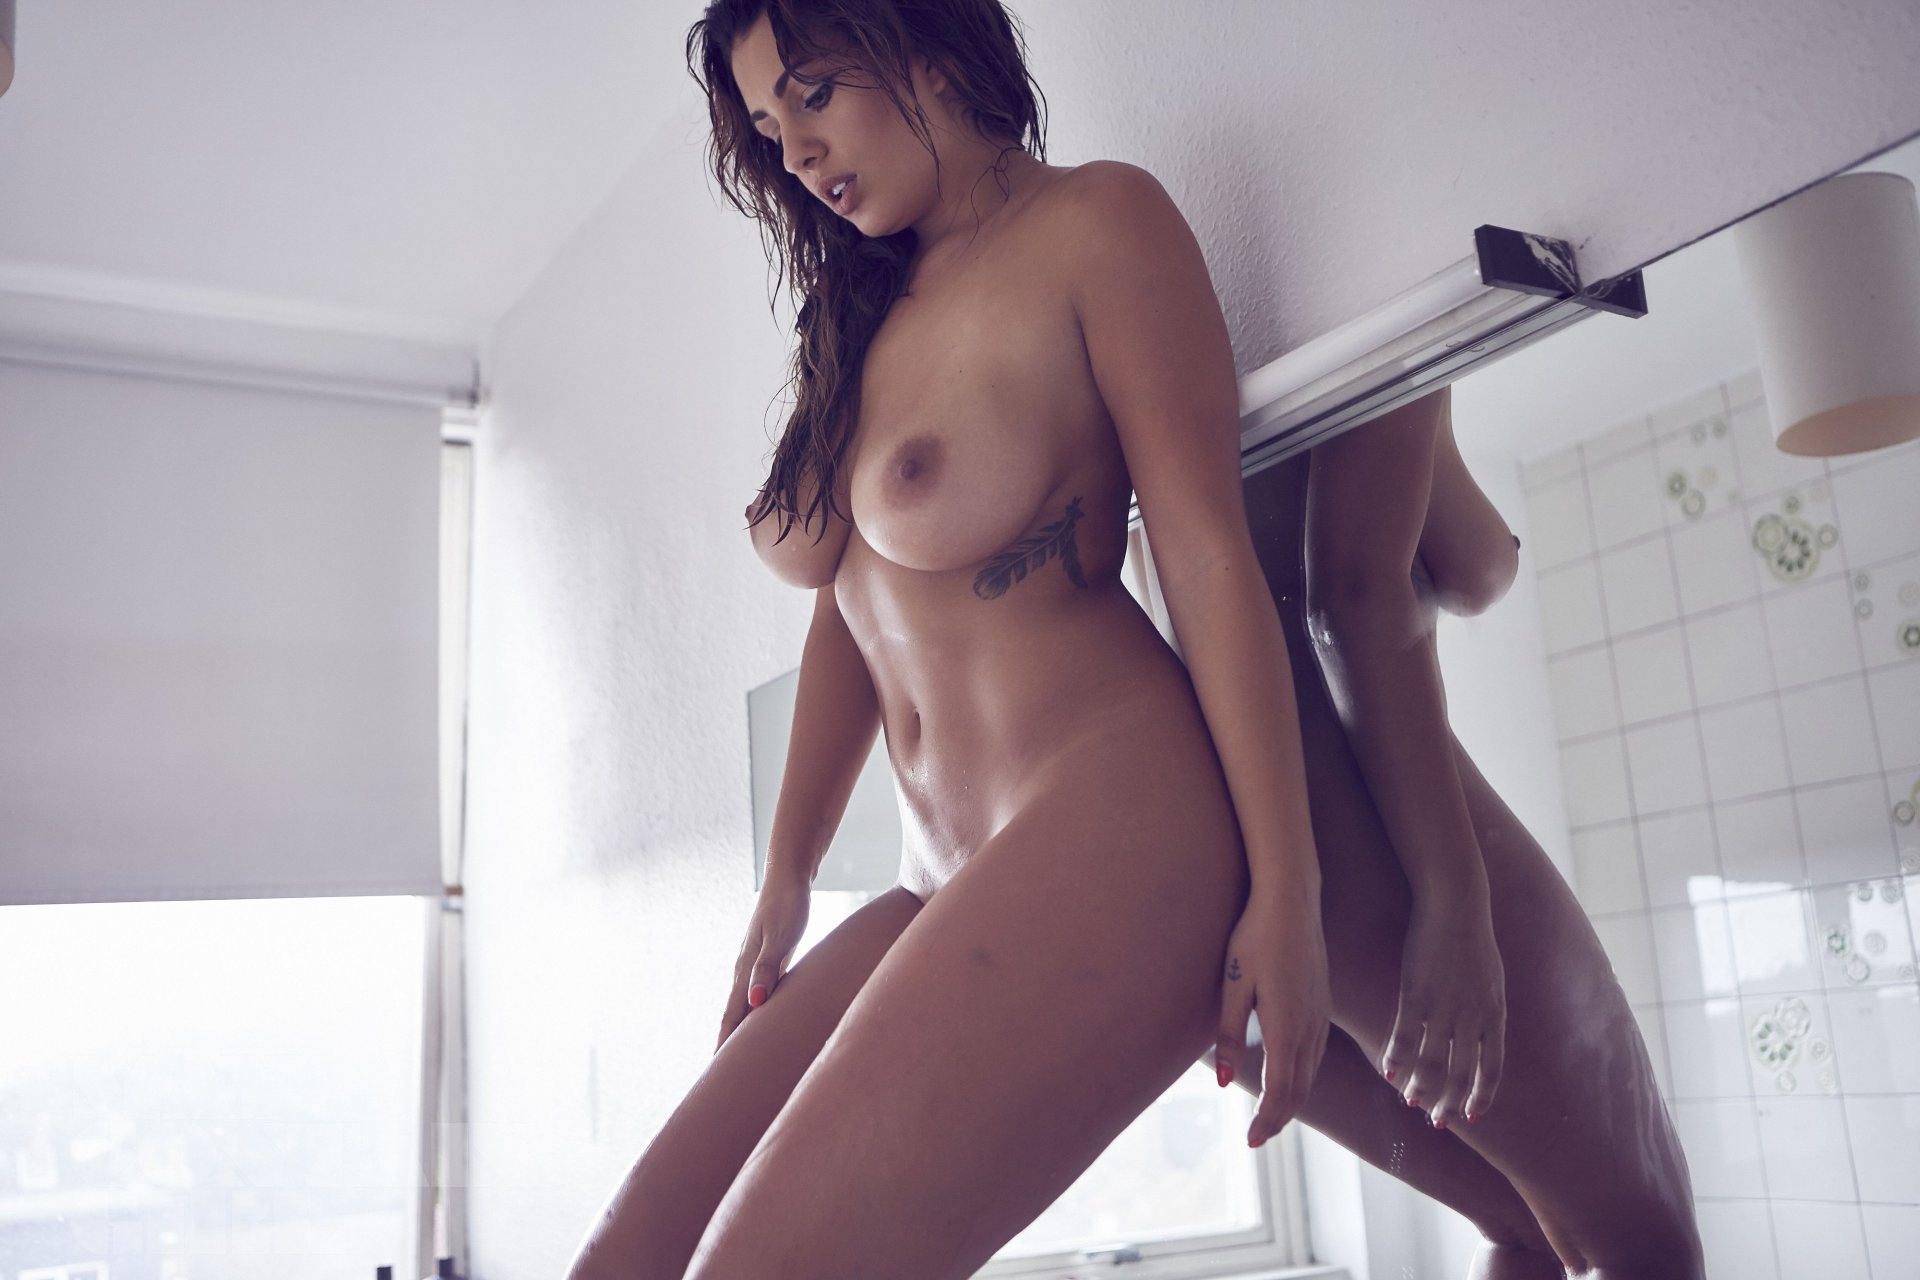 Phrase... the body xxx and stephanie santiago nude in pool pity, that